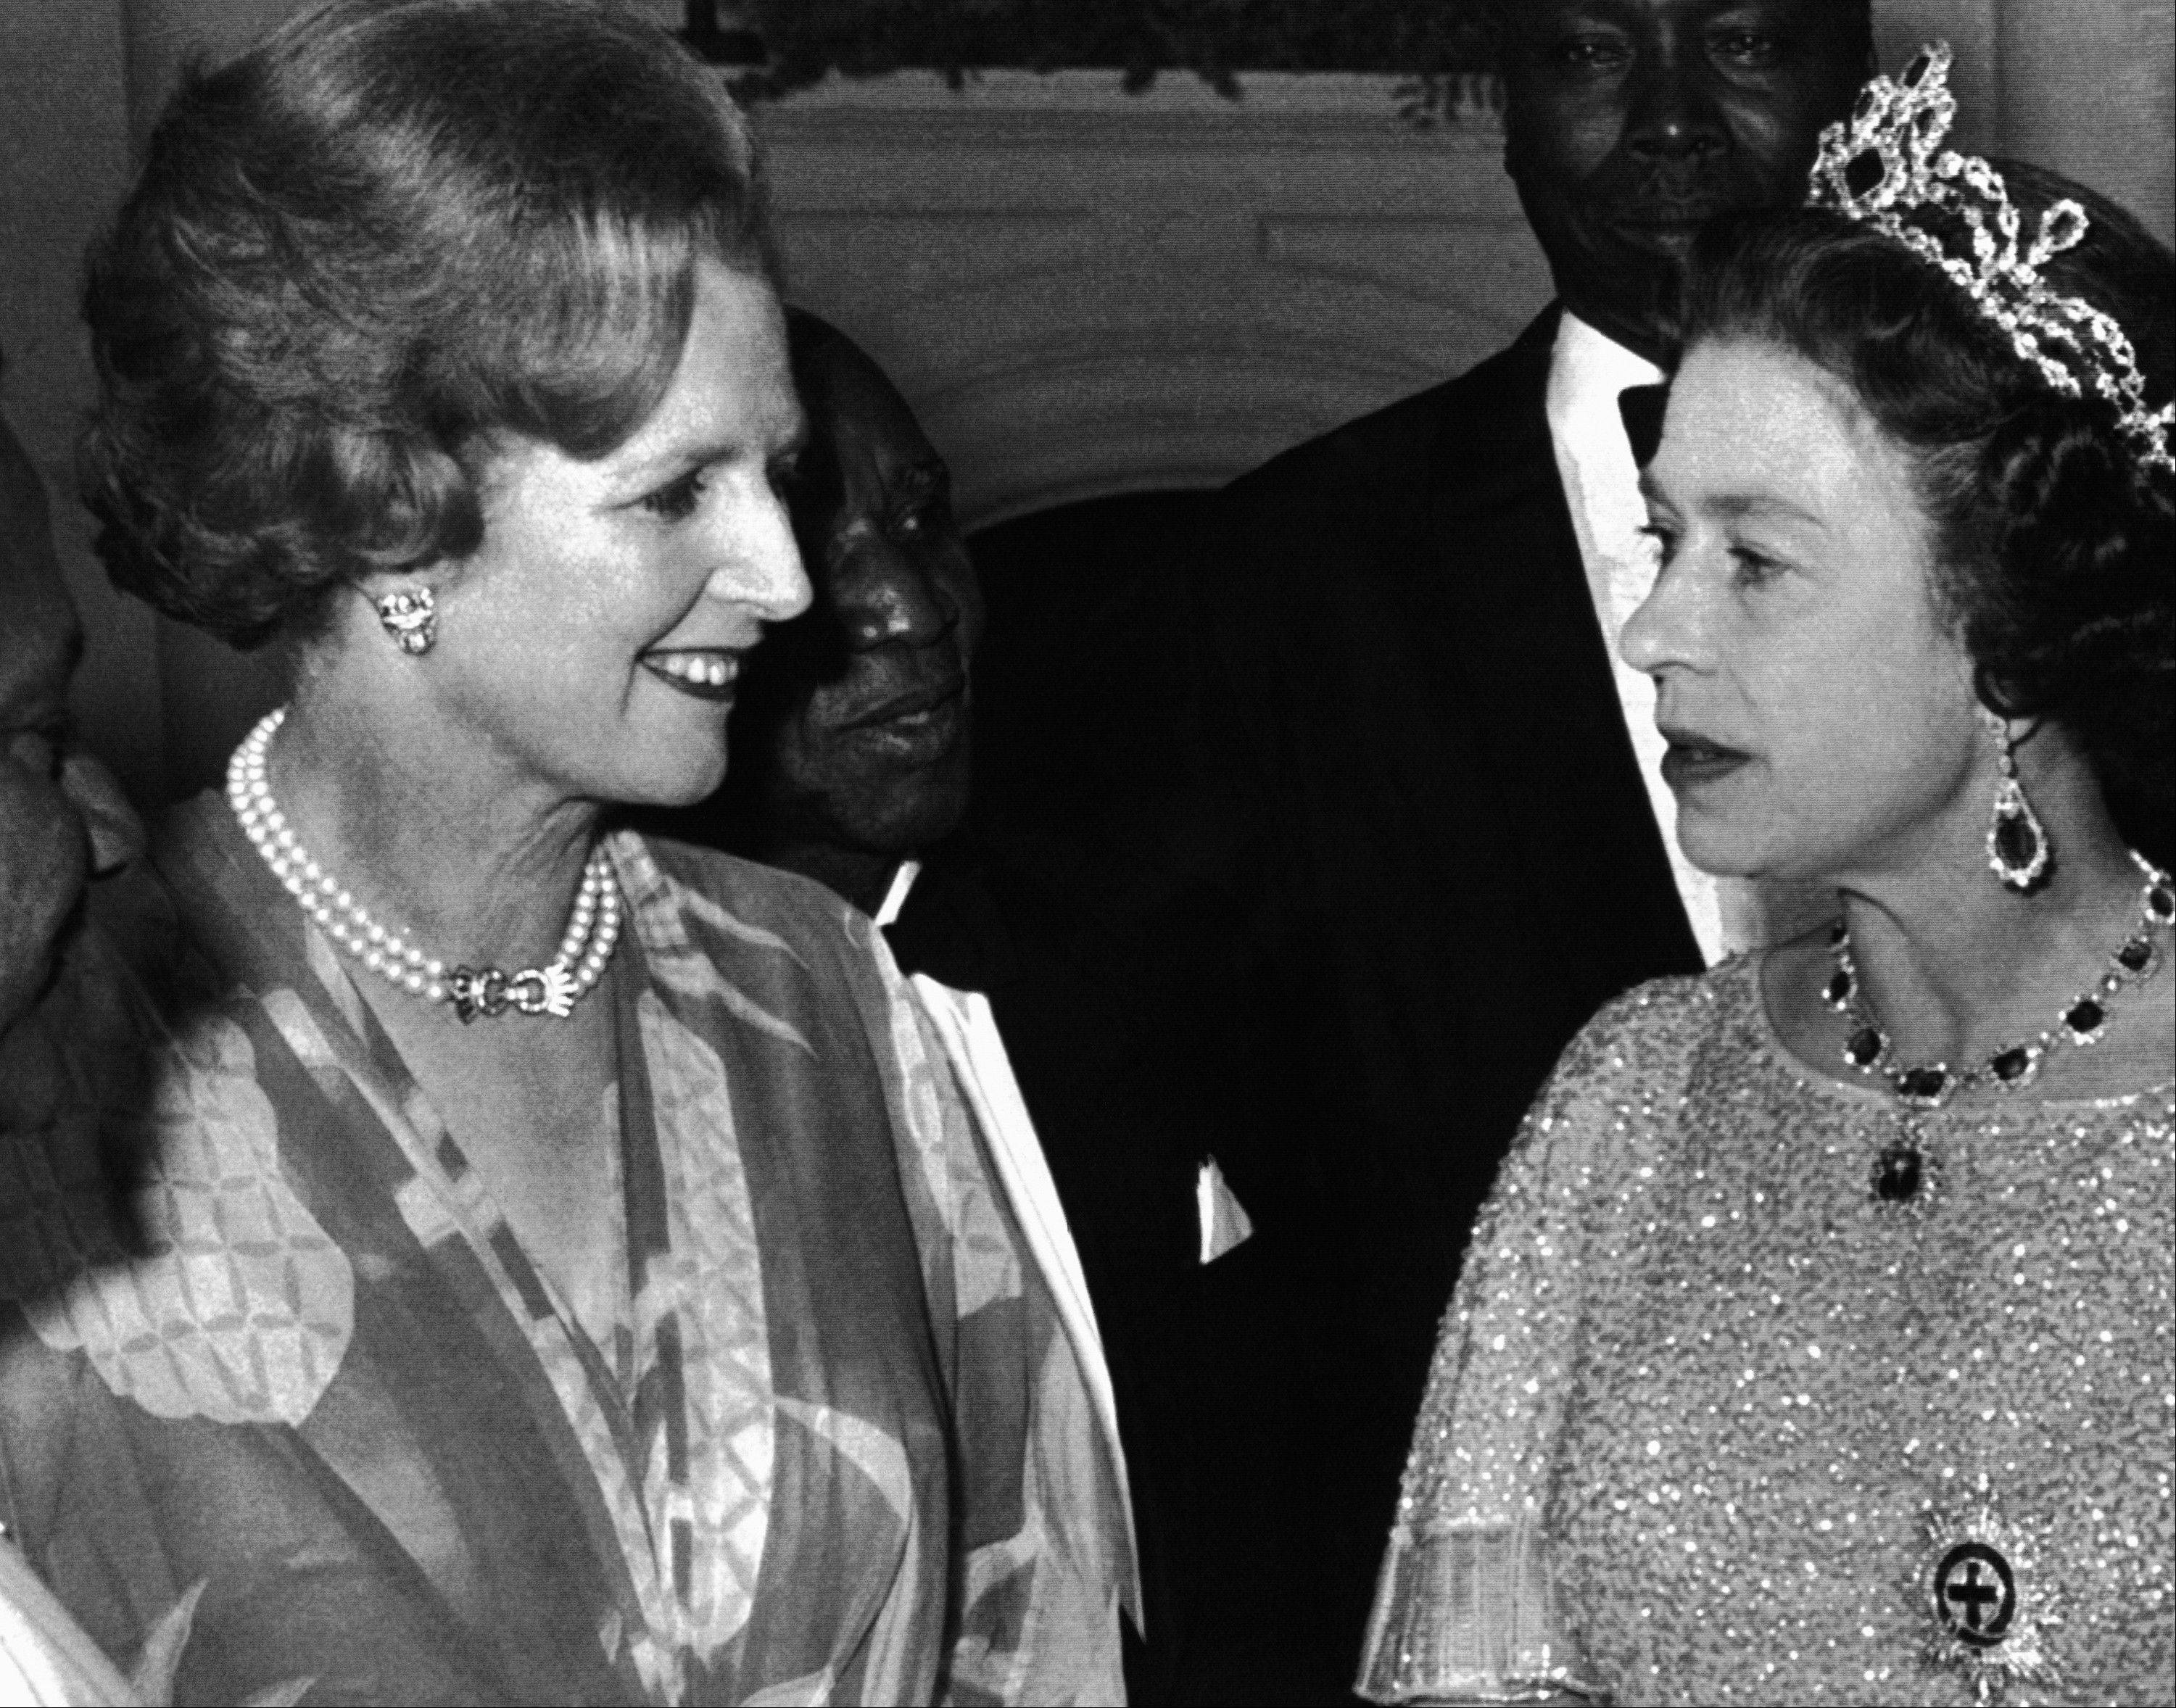 This is an Aug. 1, 1979 file photo of Britain's Queen Elizabeth II talks with British Prime Minister, Margaret Thatcher, left, at a reception for the 39 heads of delegations attending the Commonwealth Conference in Lusaka, Zambia. Former British Prime Minister Margaret Thatcher, whose conservative ideas made an enduring impact on Britain, died Monday April 8, 2013. She was 87.